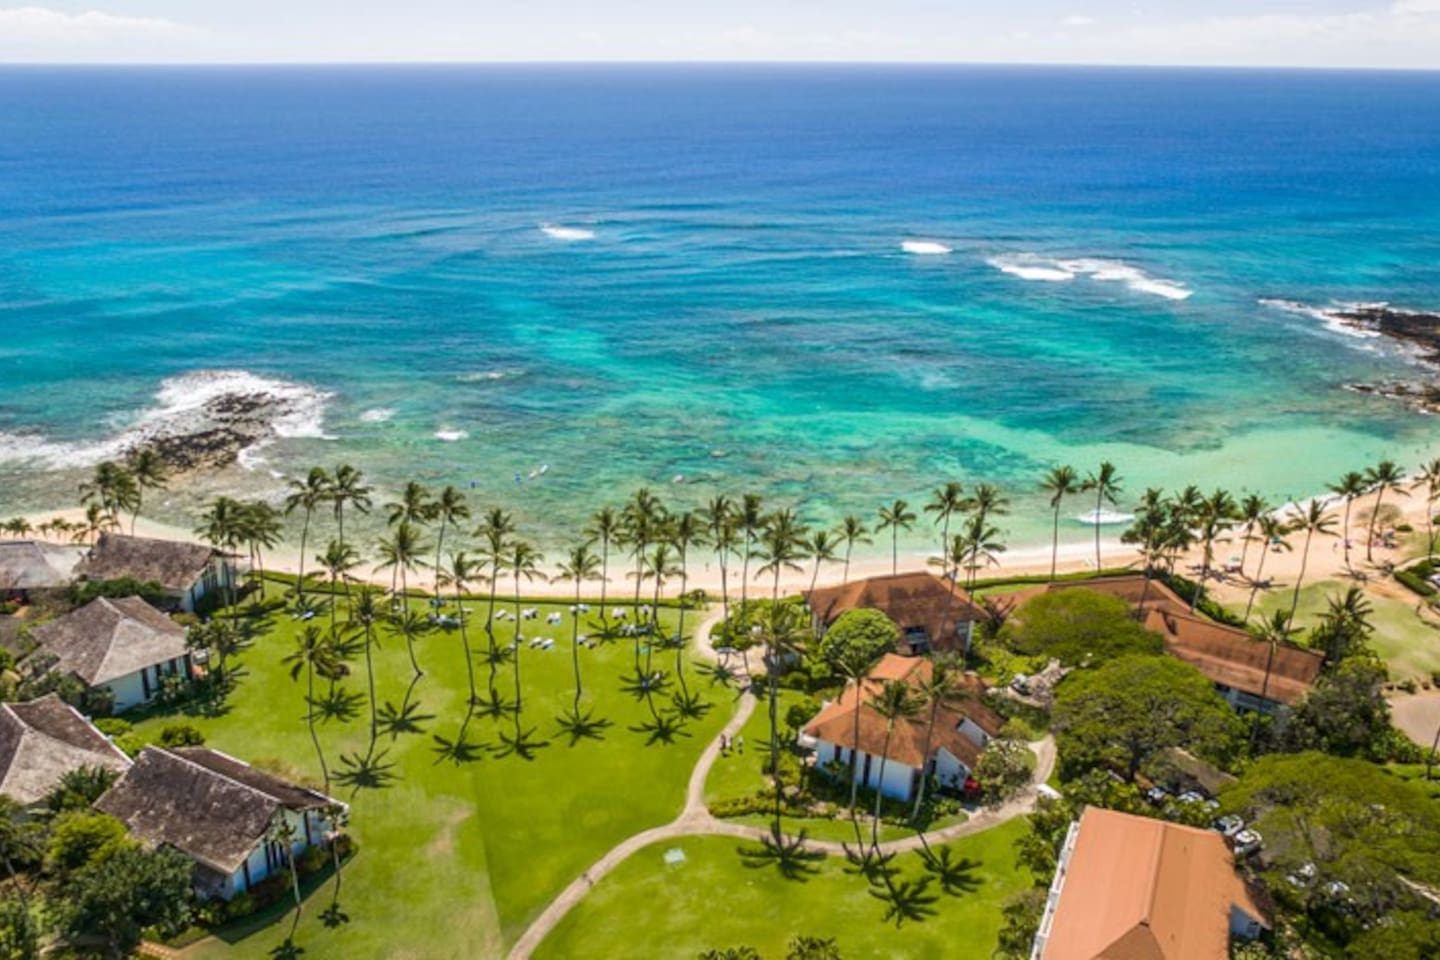 Our place is between the Sheraton and the Marriott on Kauai's sunny south side.  Wake up to the radiant Poipu sun shining where resort amenities meet authentic Hawaii lifestyle.